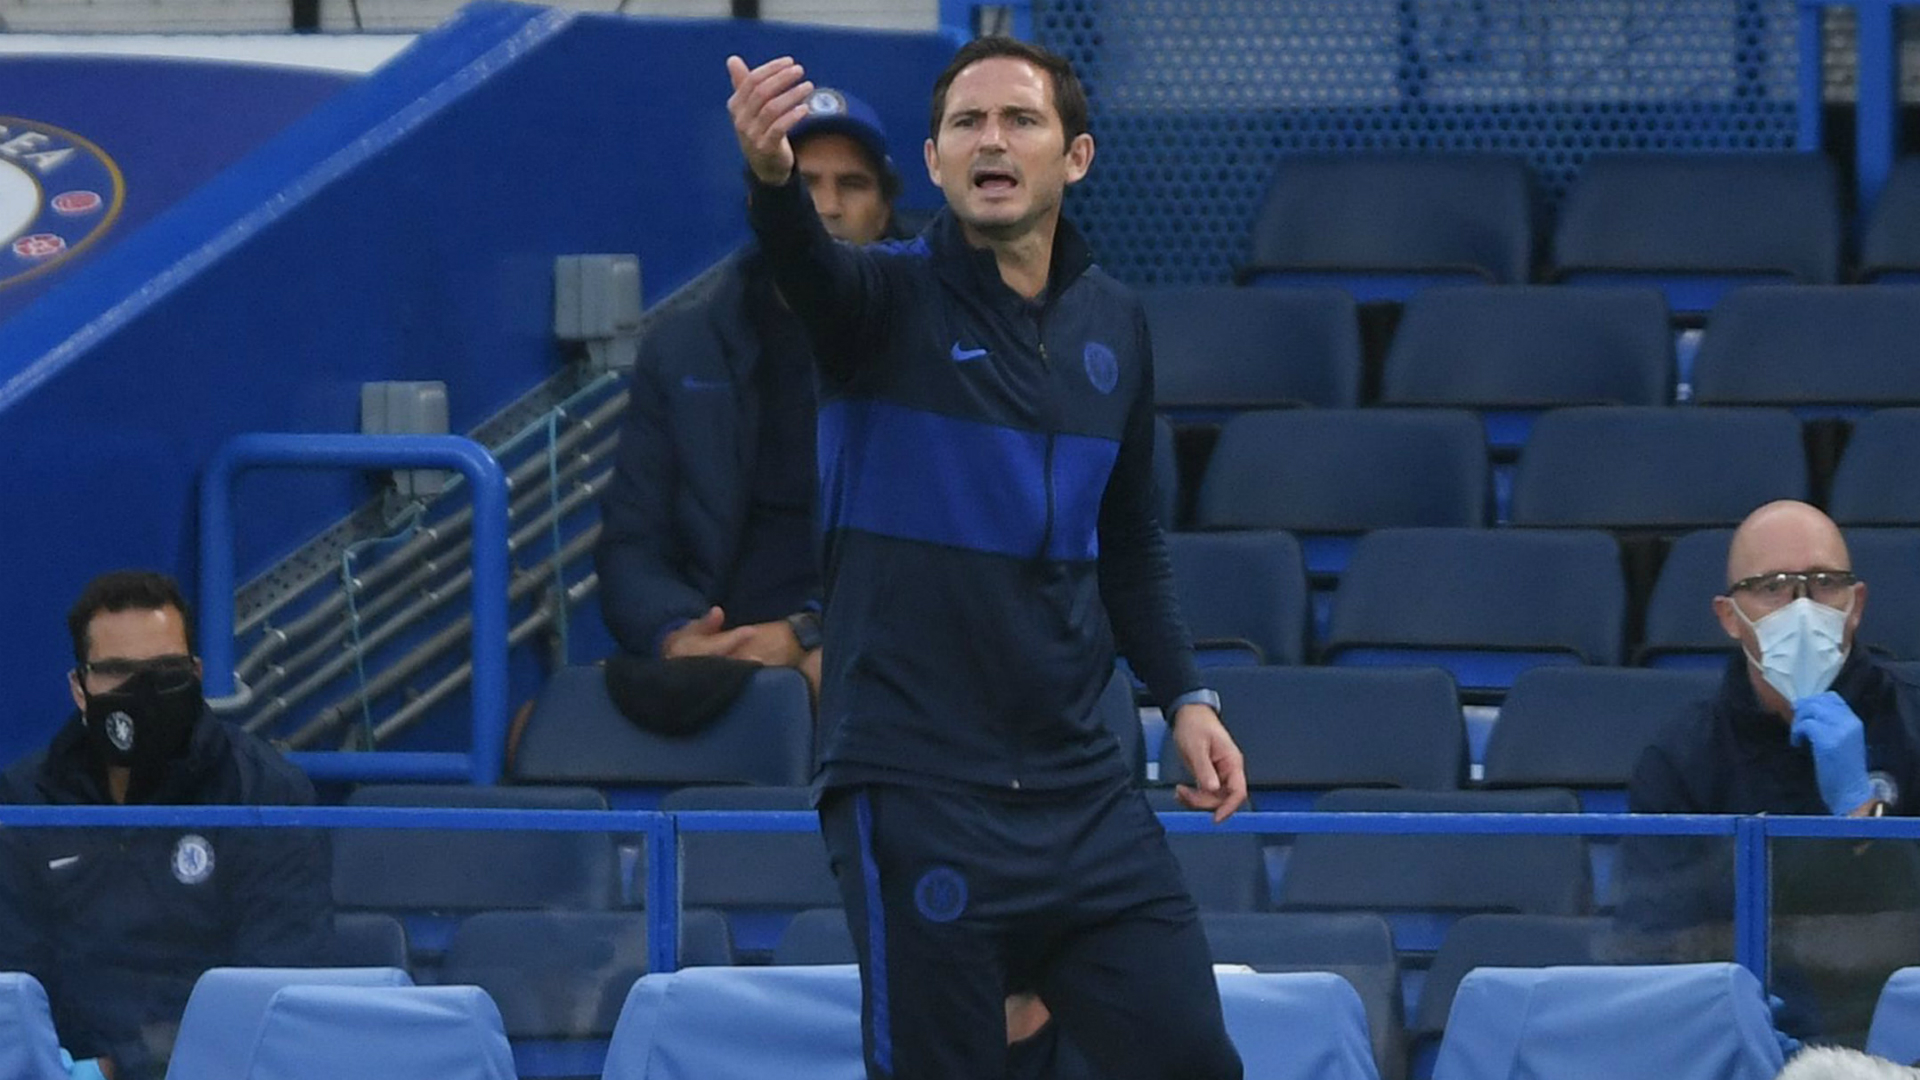 'Sometimes experience is overrated' - Lampard puts faith in Chelsea youngsters